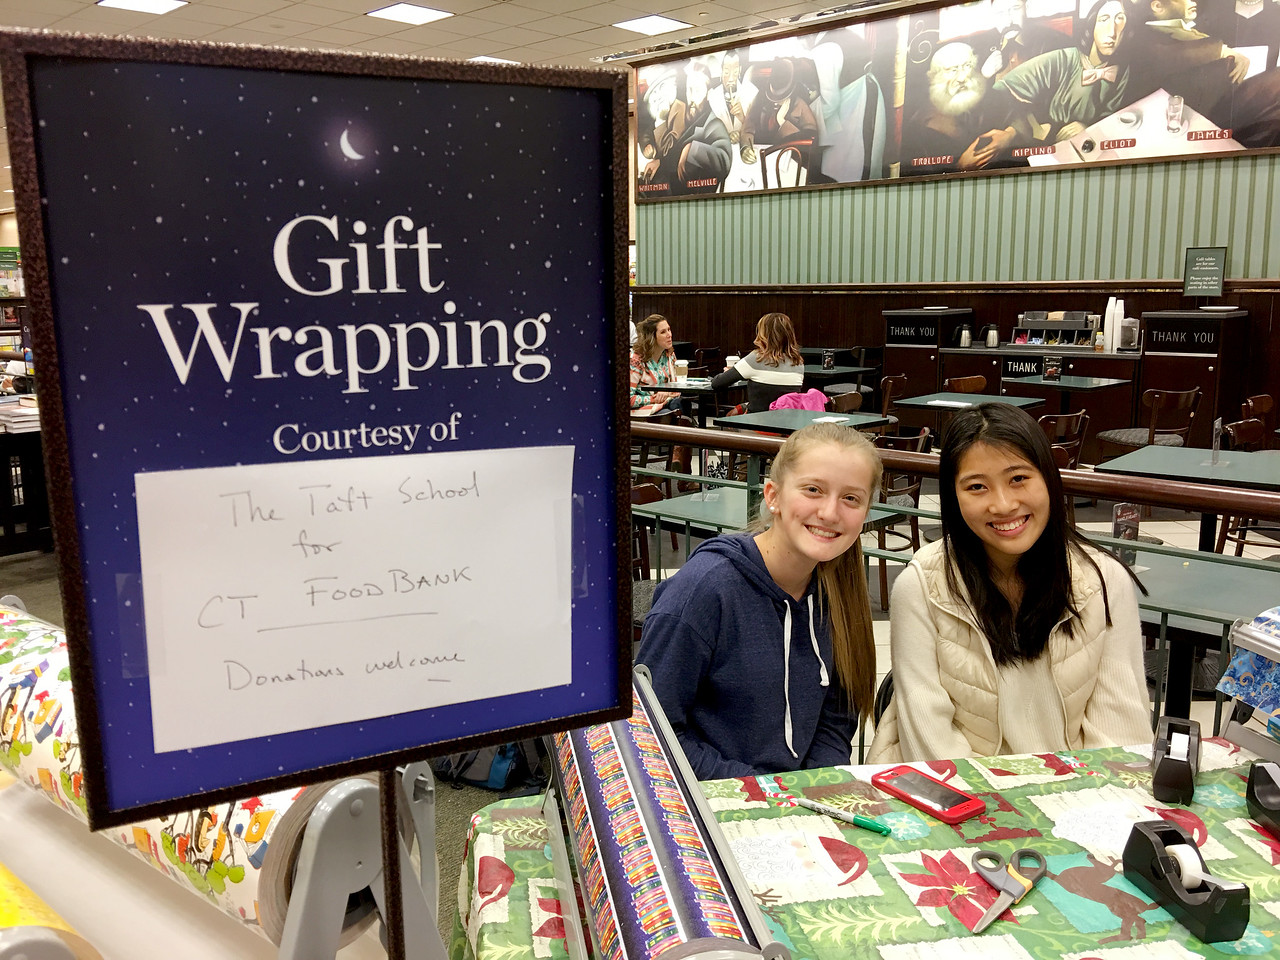 Community Service Council Gift Wrapping - Taft School